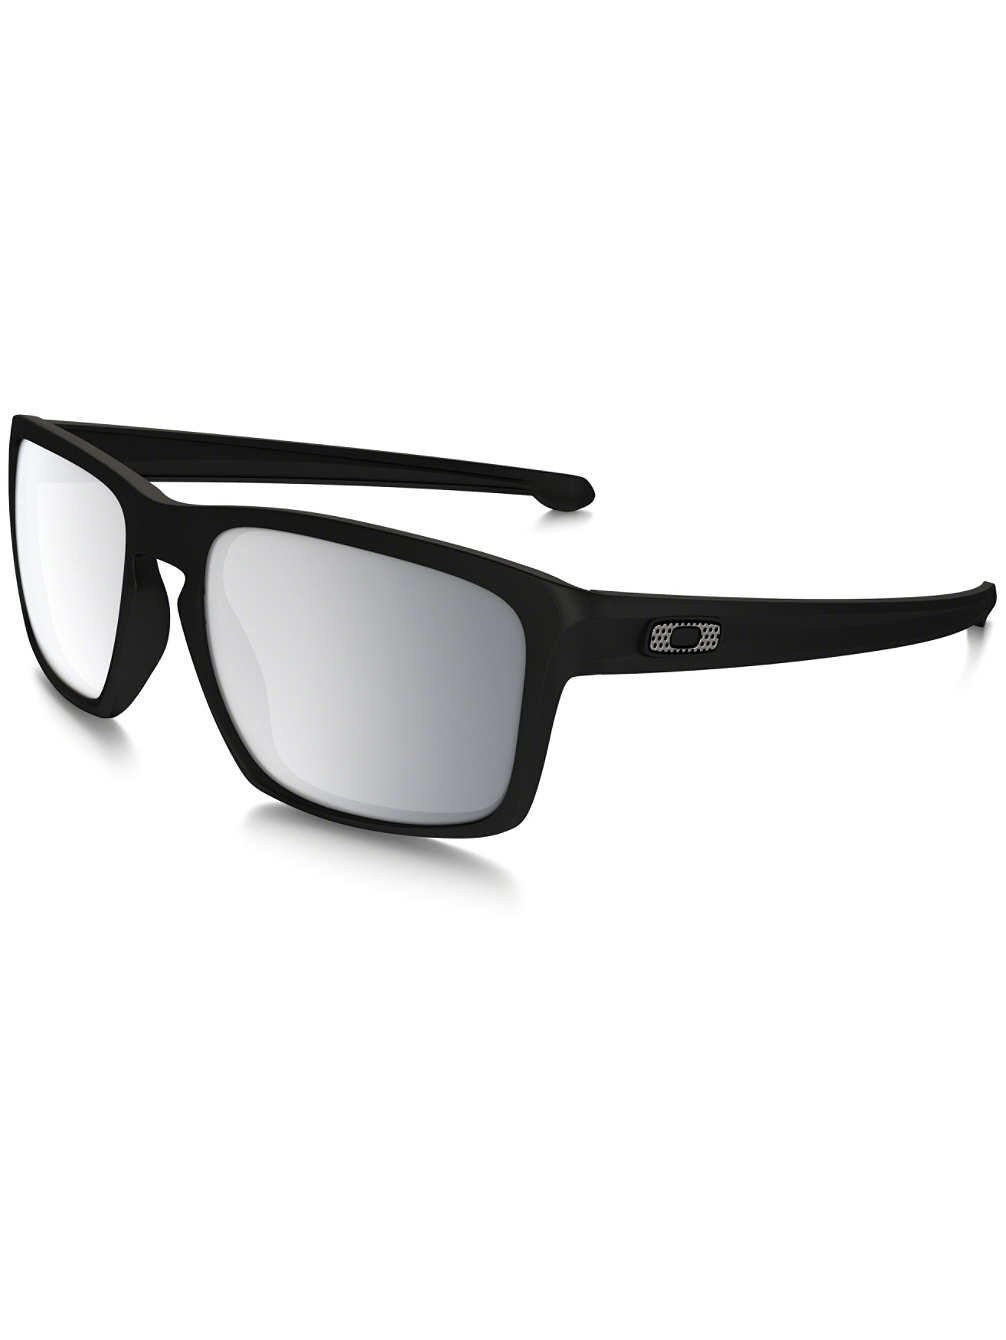 oakley glasses uk deals  oakley sunglasses sliver